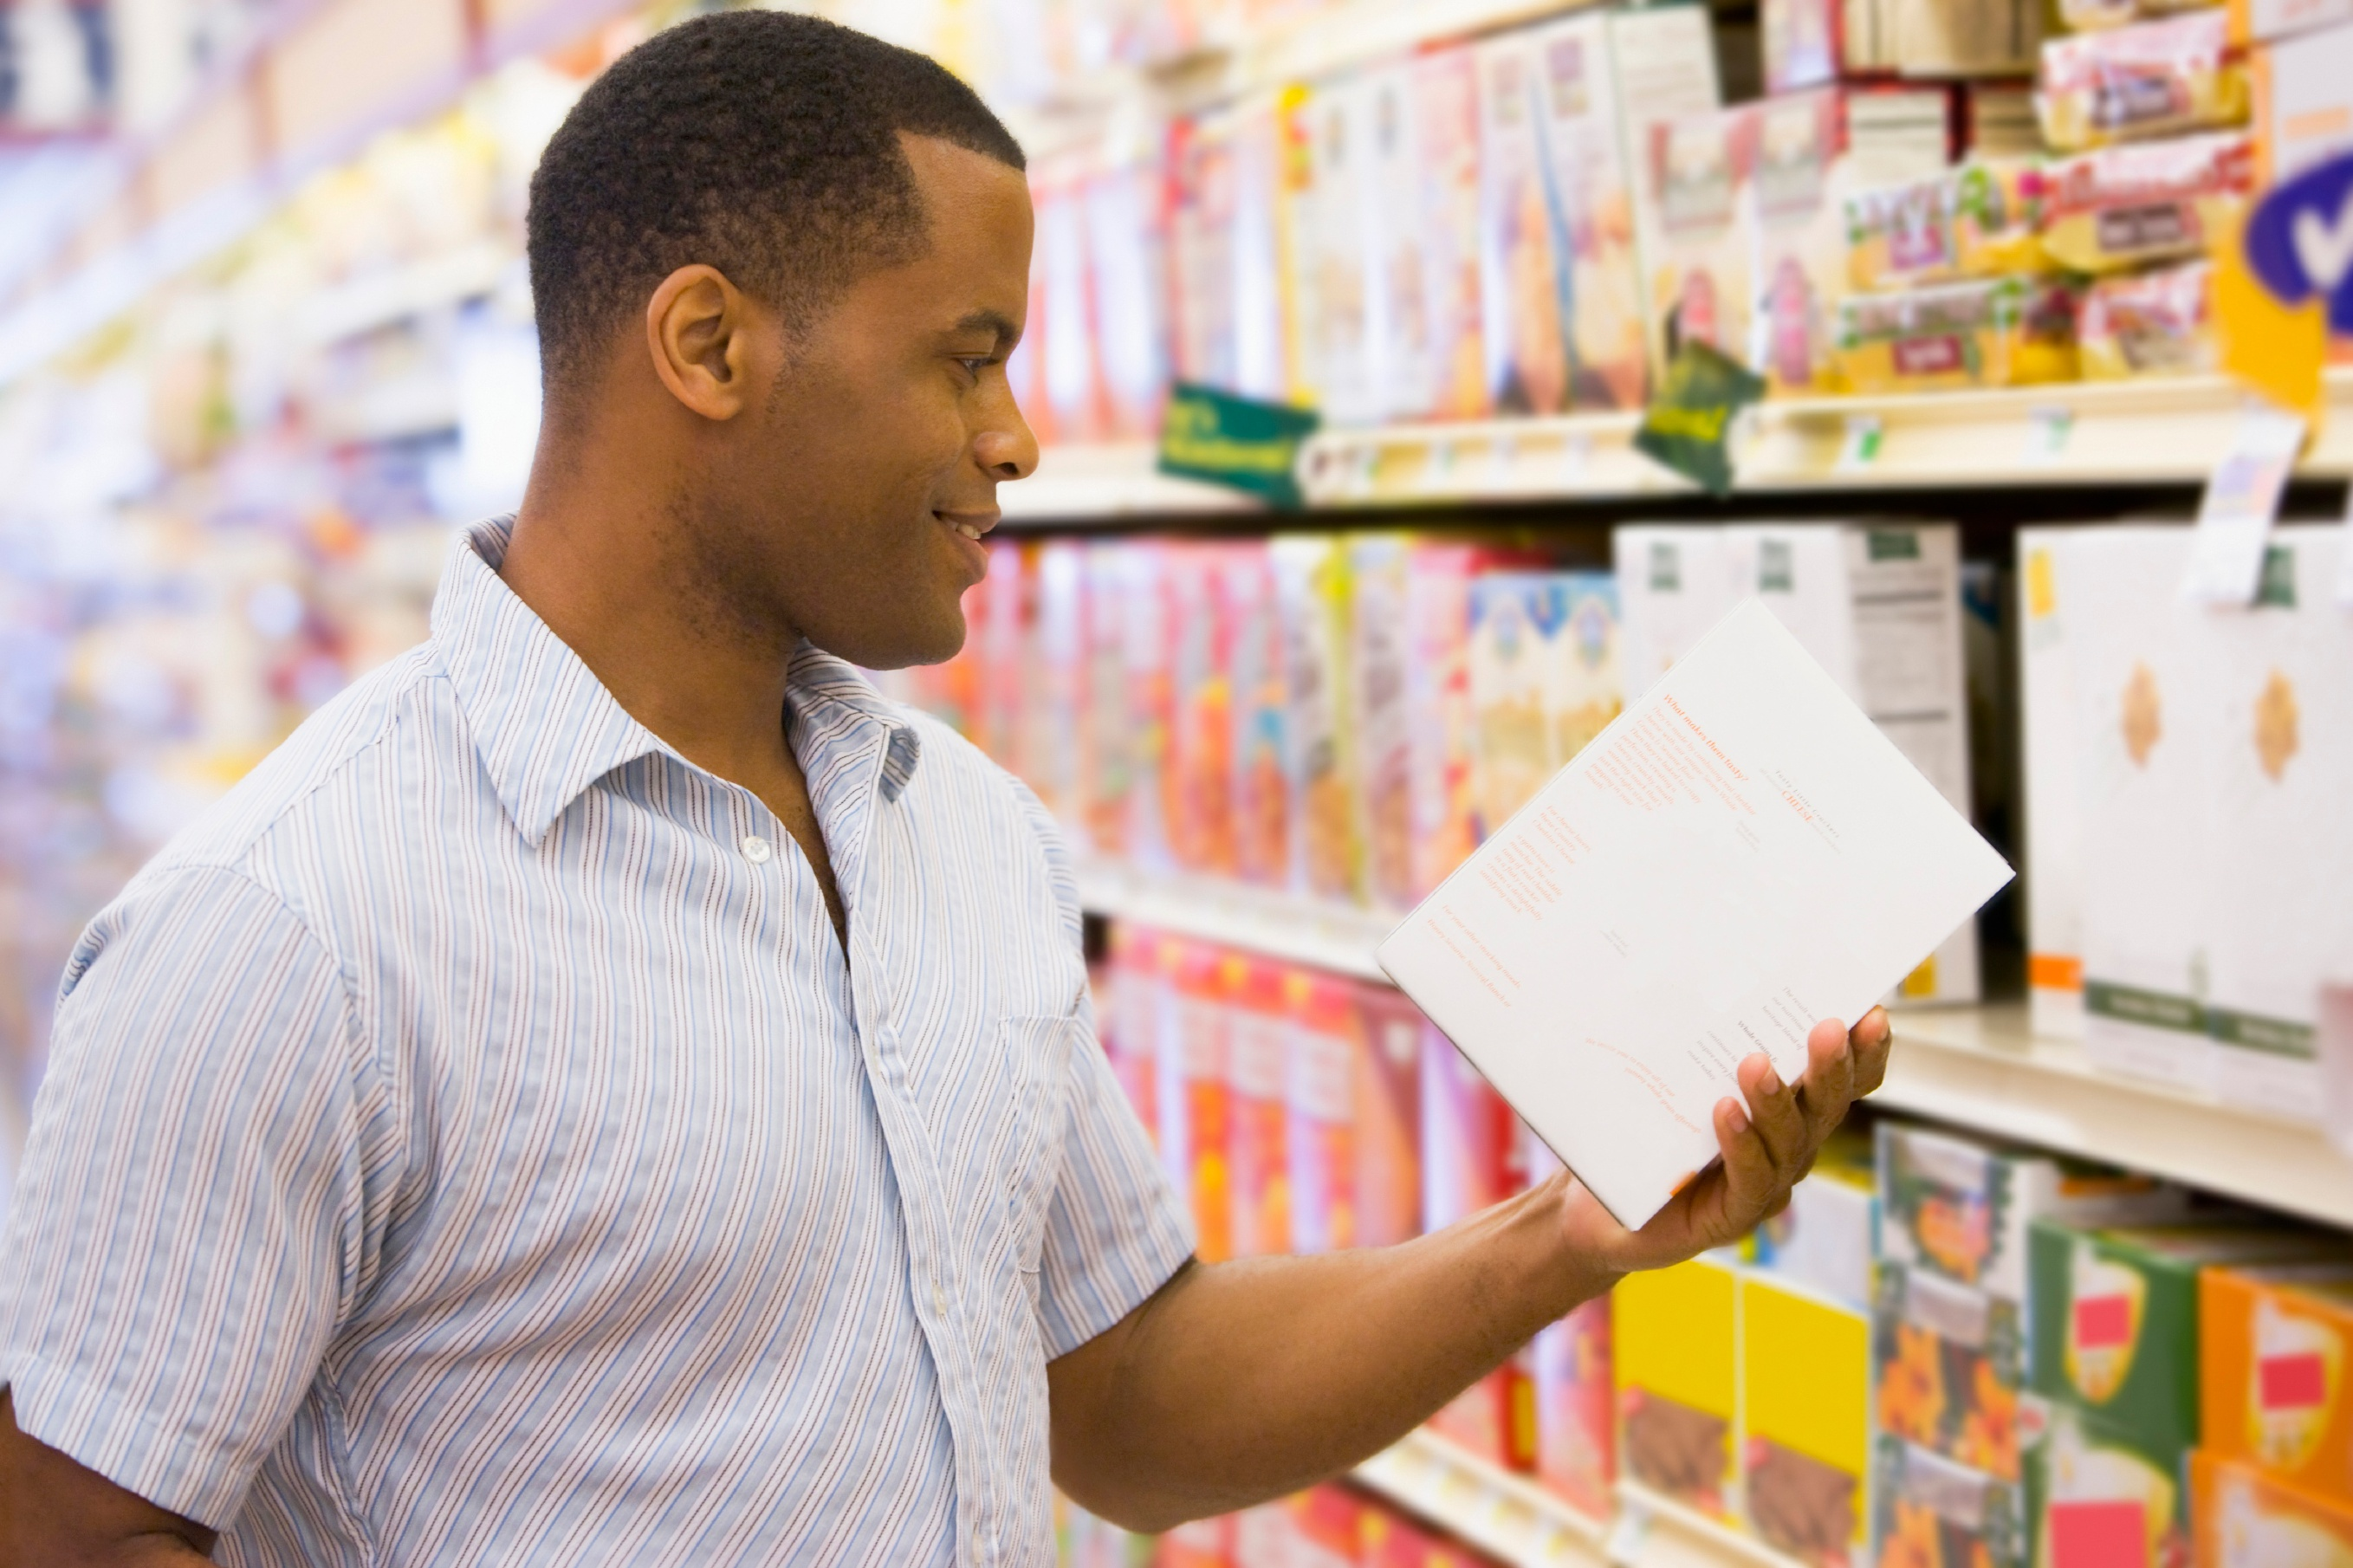 At the Crossroads of Food Safety and Consumer Transparency